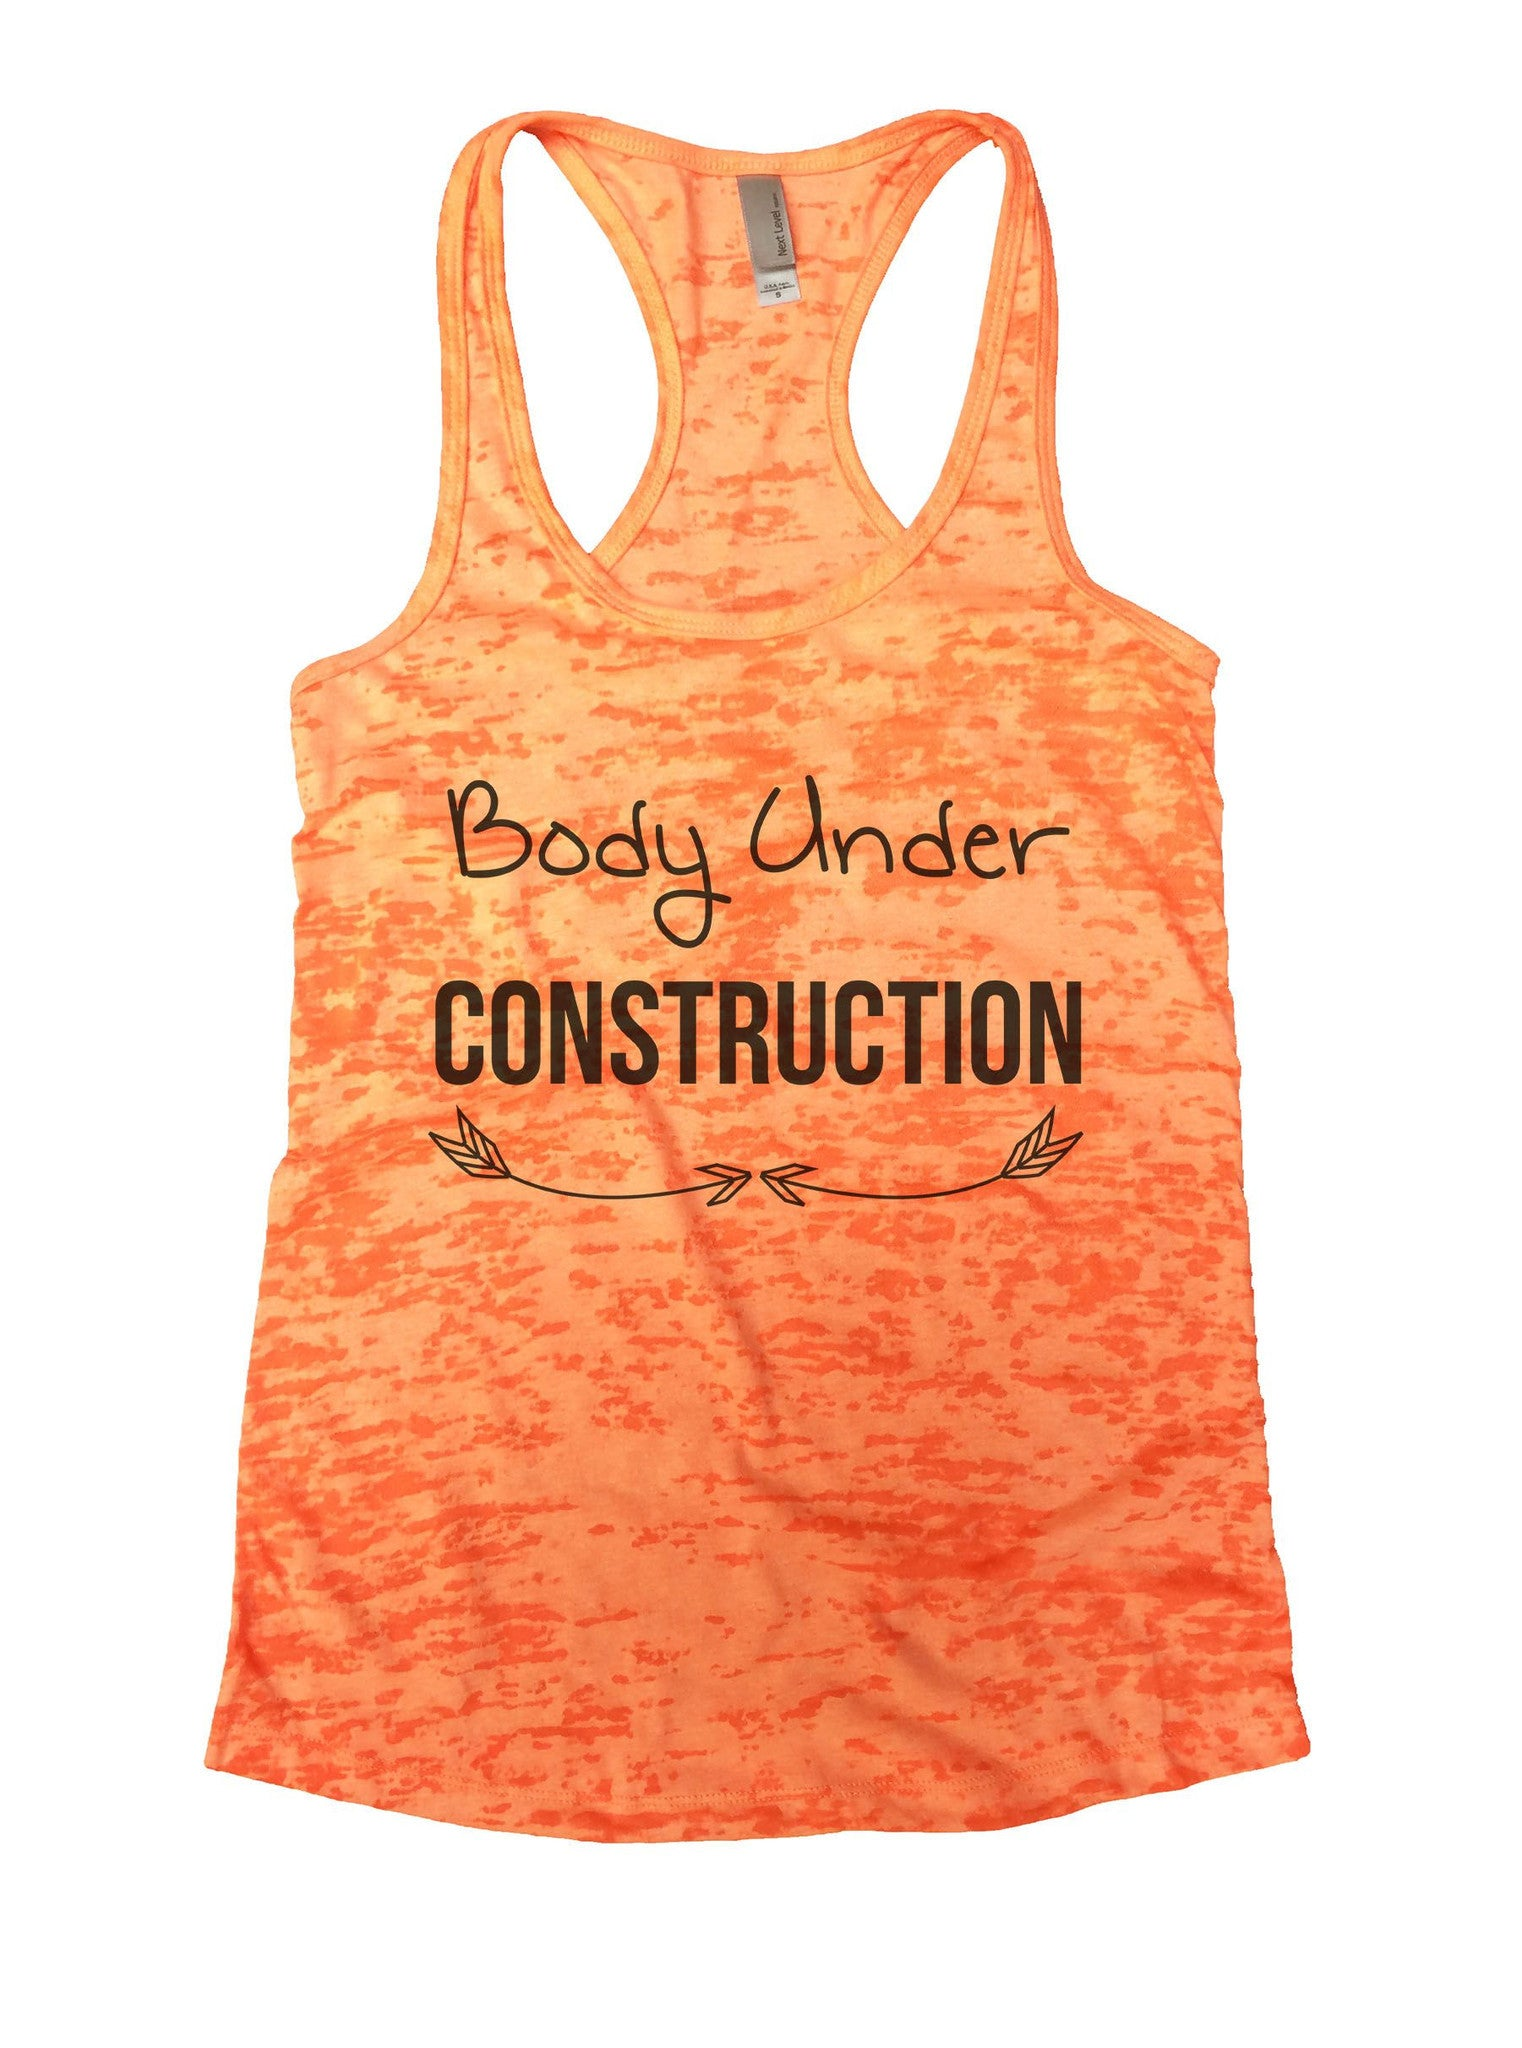 Body Under Construction Burnout Tank Top By BurnoutTankTops.com - 877 - Funny Shirts Tank Tops Burnouts and Triblends  - 3